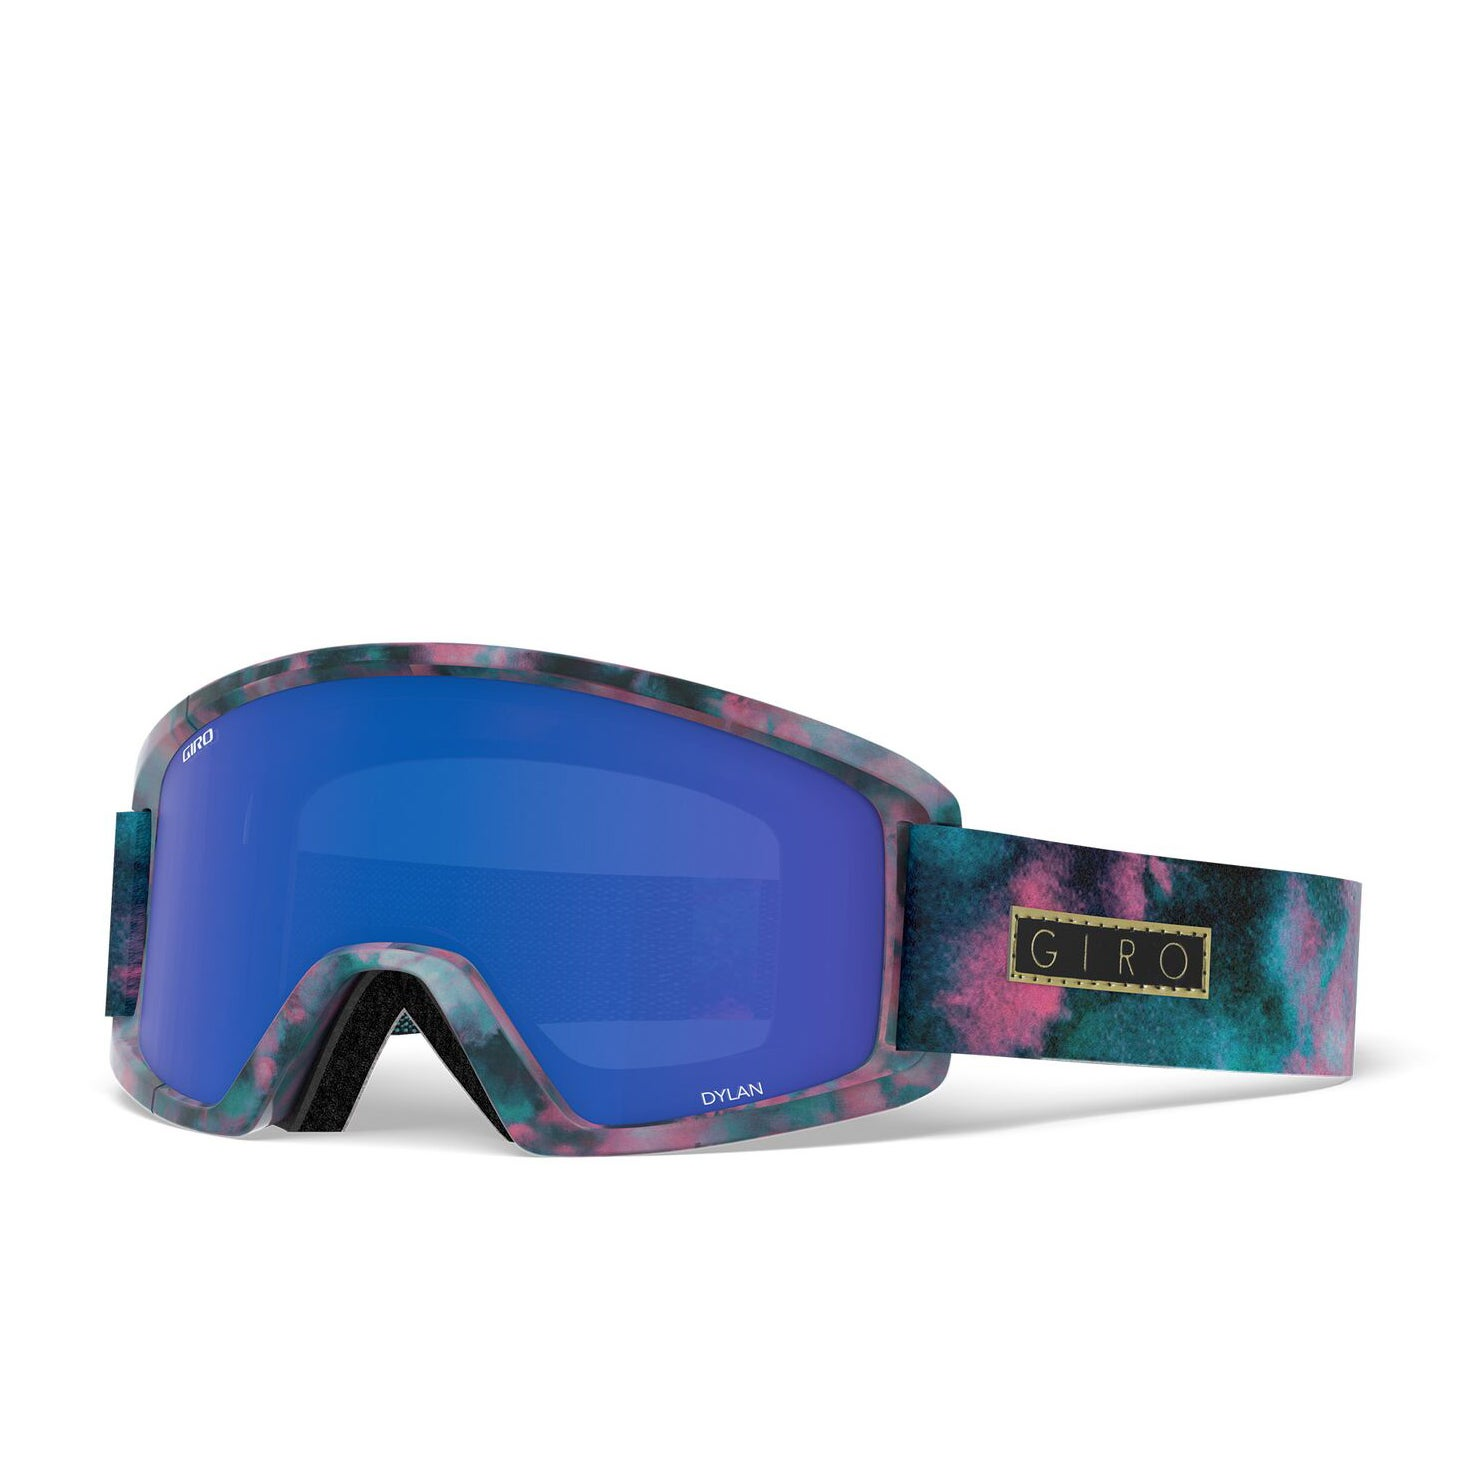 Giro Dylan Womens Snow Goggles - Bleached Out Grey ~ Cobalt/yellow